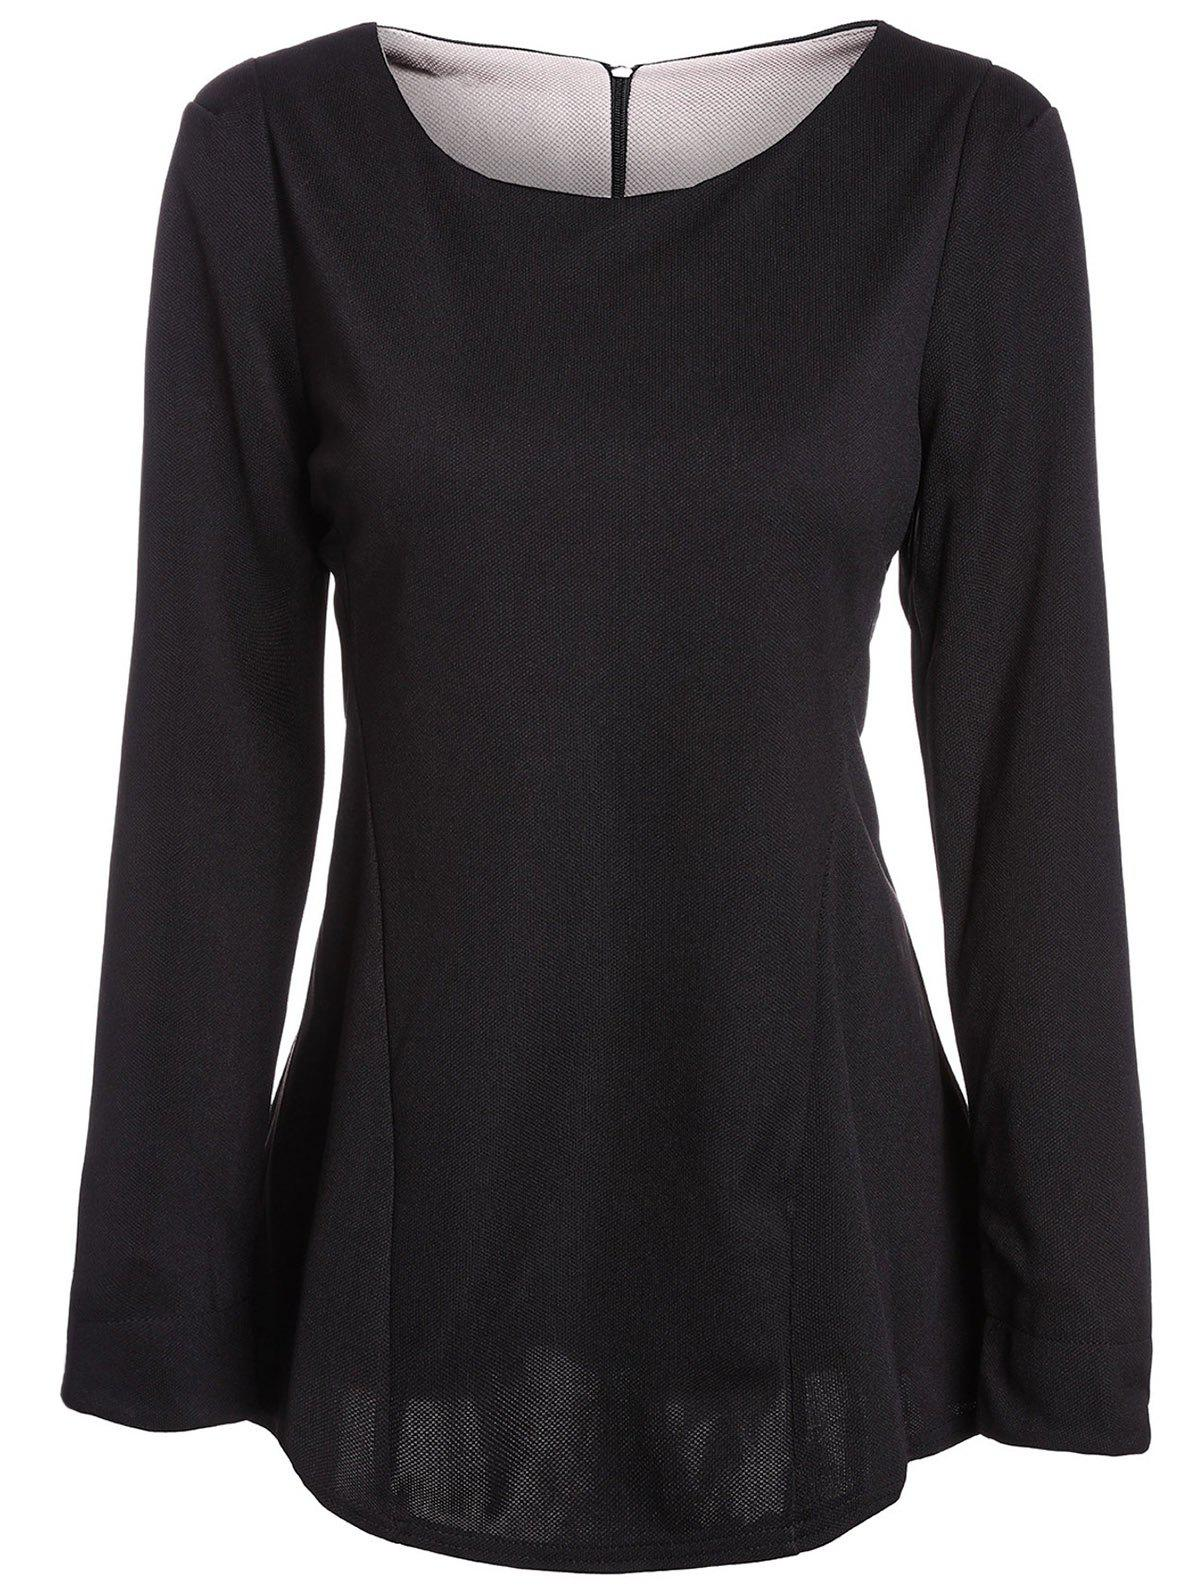 Stylish Scoop Neck Color Block Long Sleeve Ruffled Blouse For Women - XL BLACK